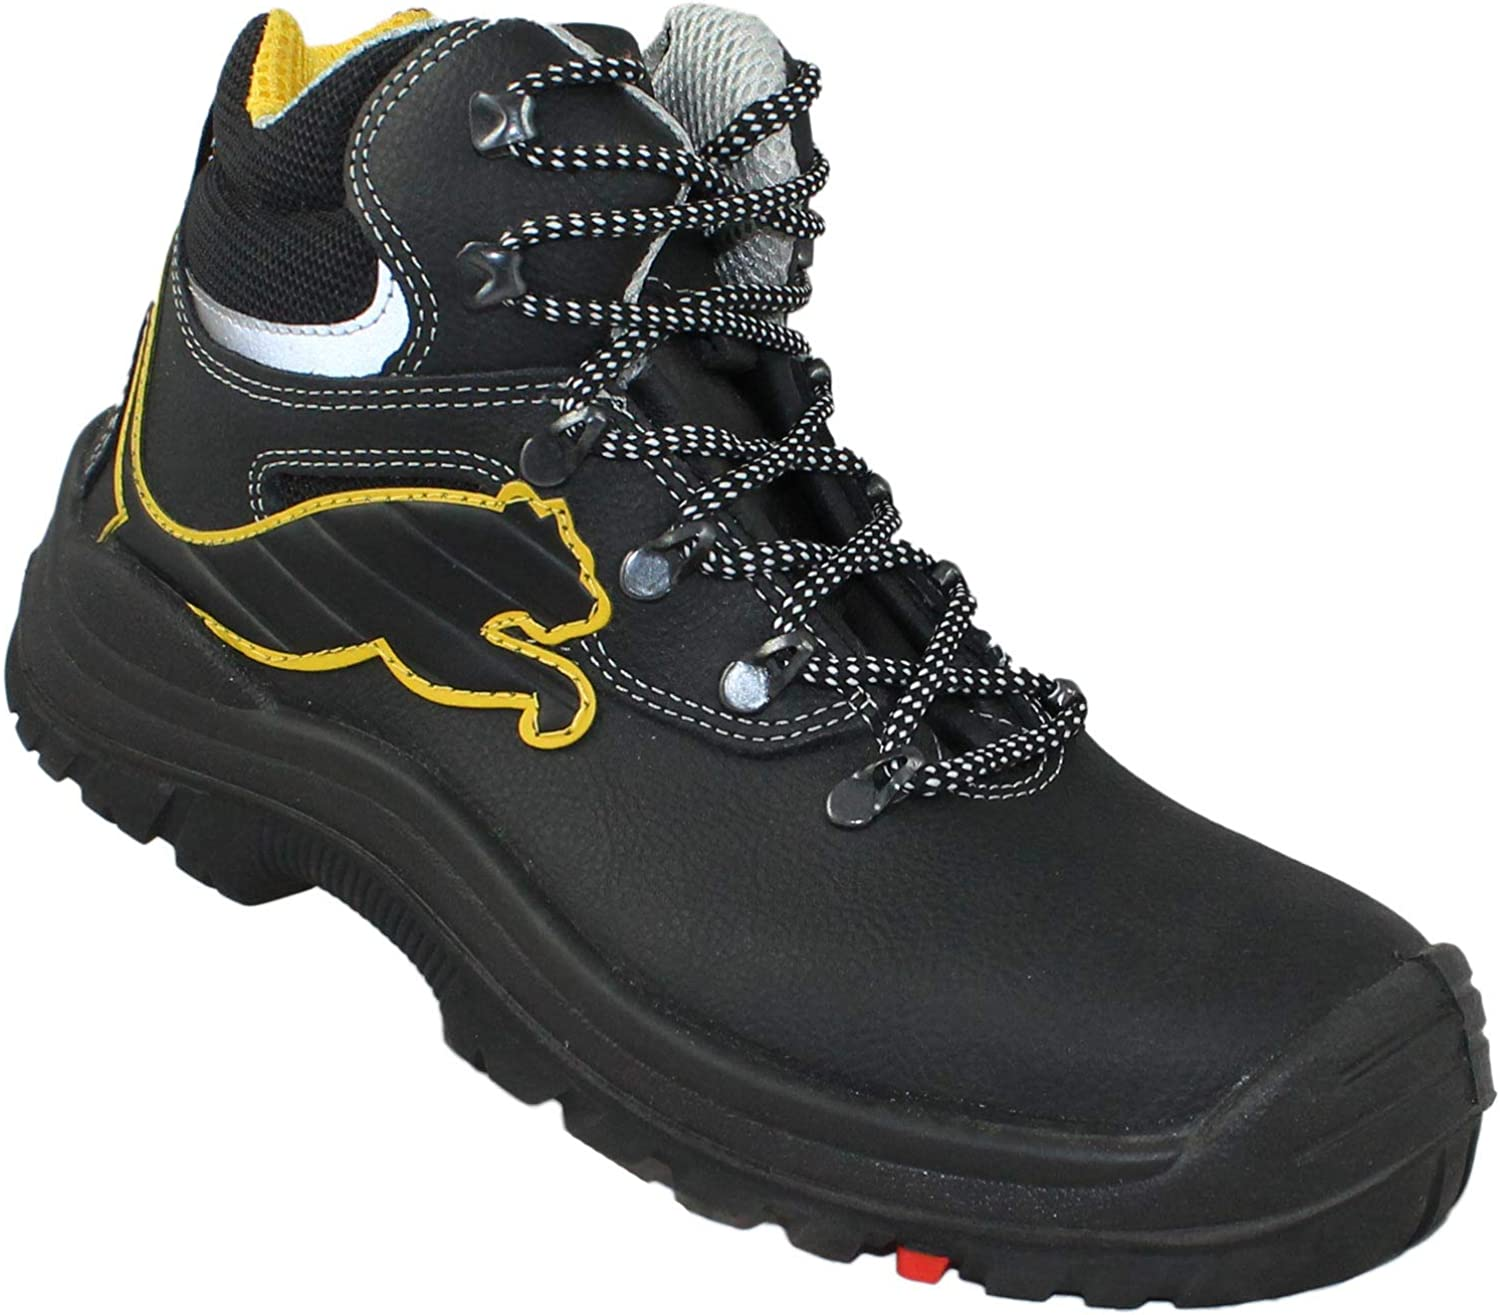 Puma Safety shoes S3 SRC Safety shoes Work shoes Hiking shoes high Black